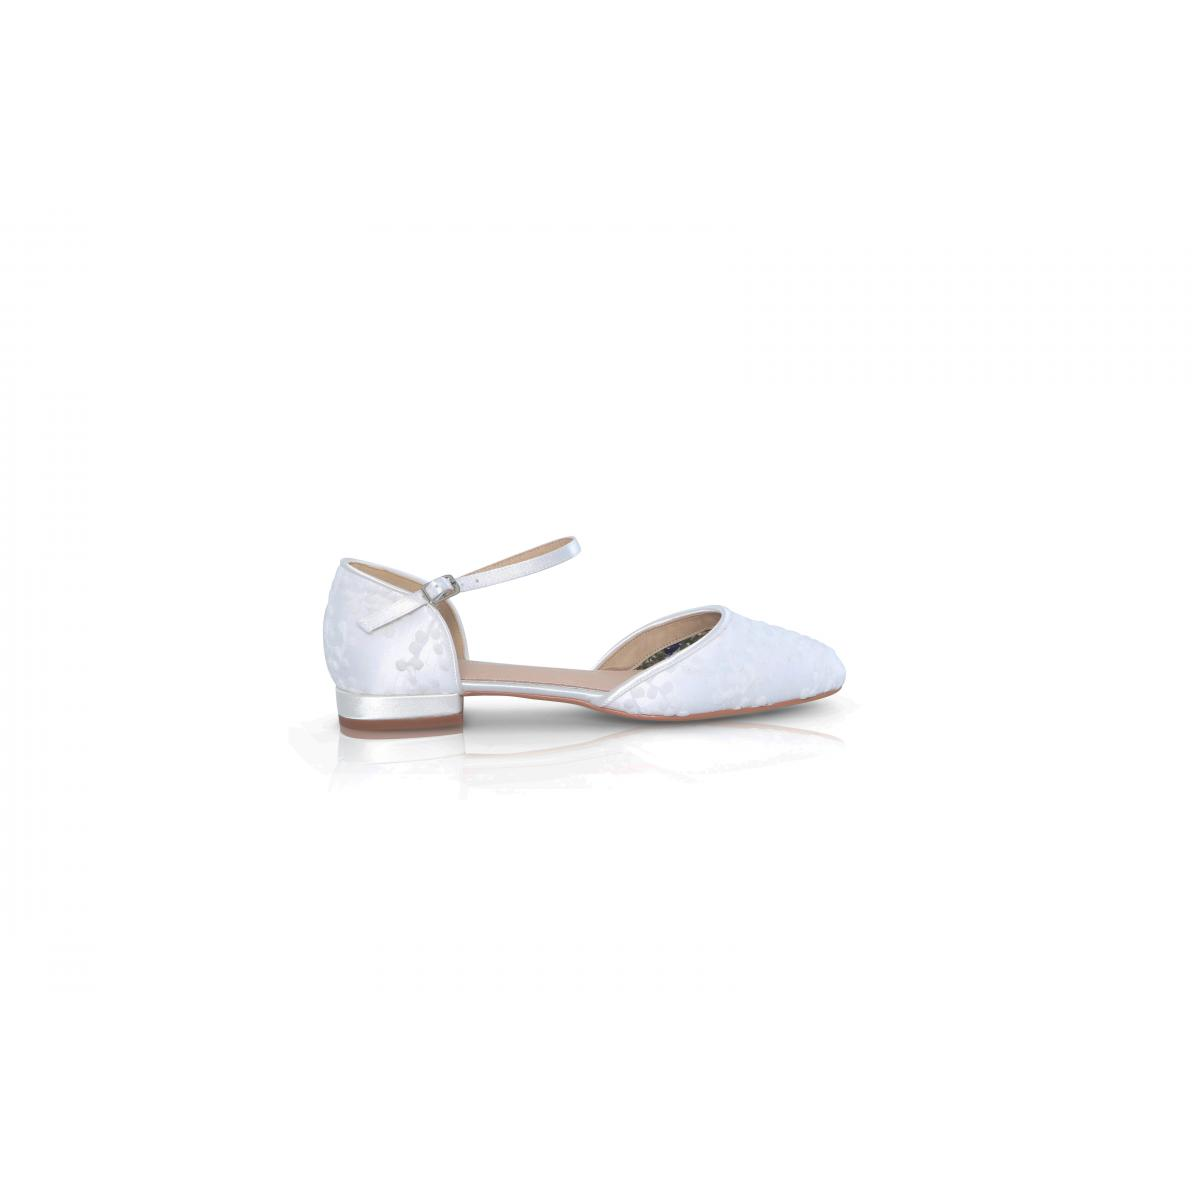 Perfect Bridal Verity Shoes - Ivory Lace 1